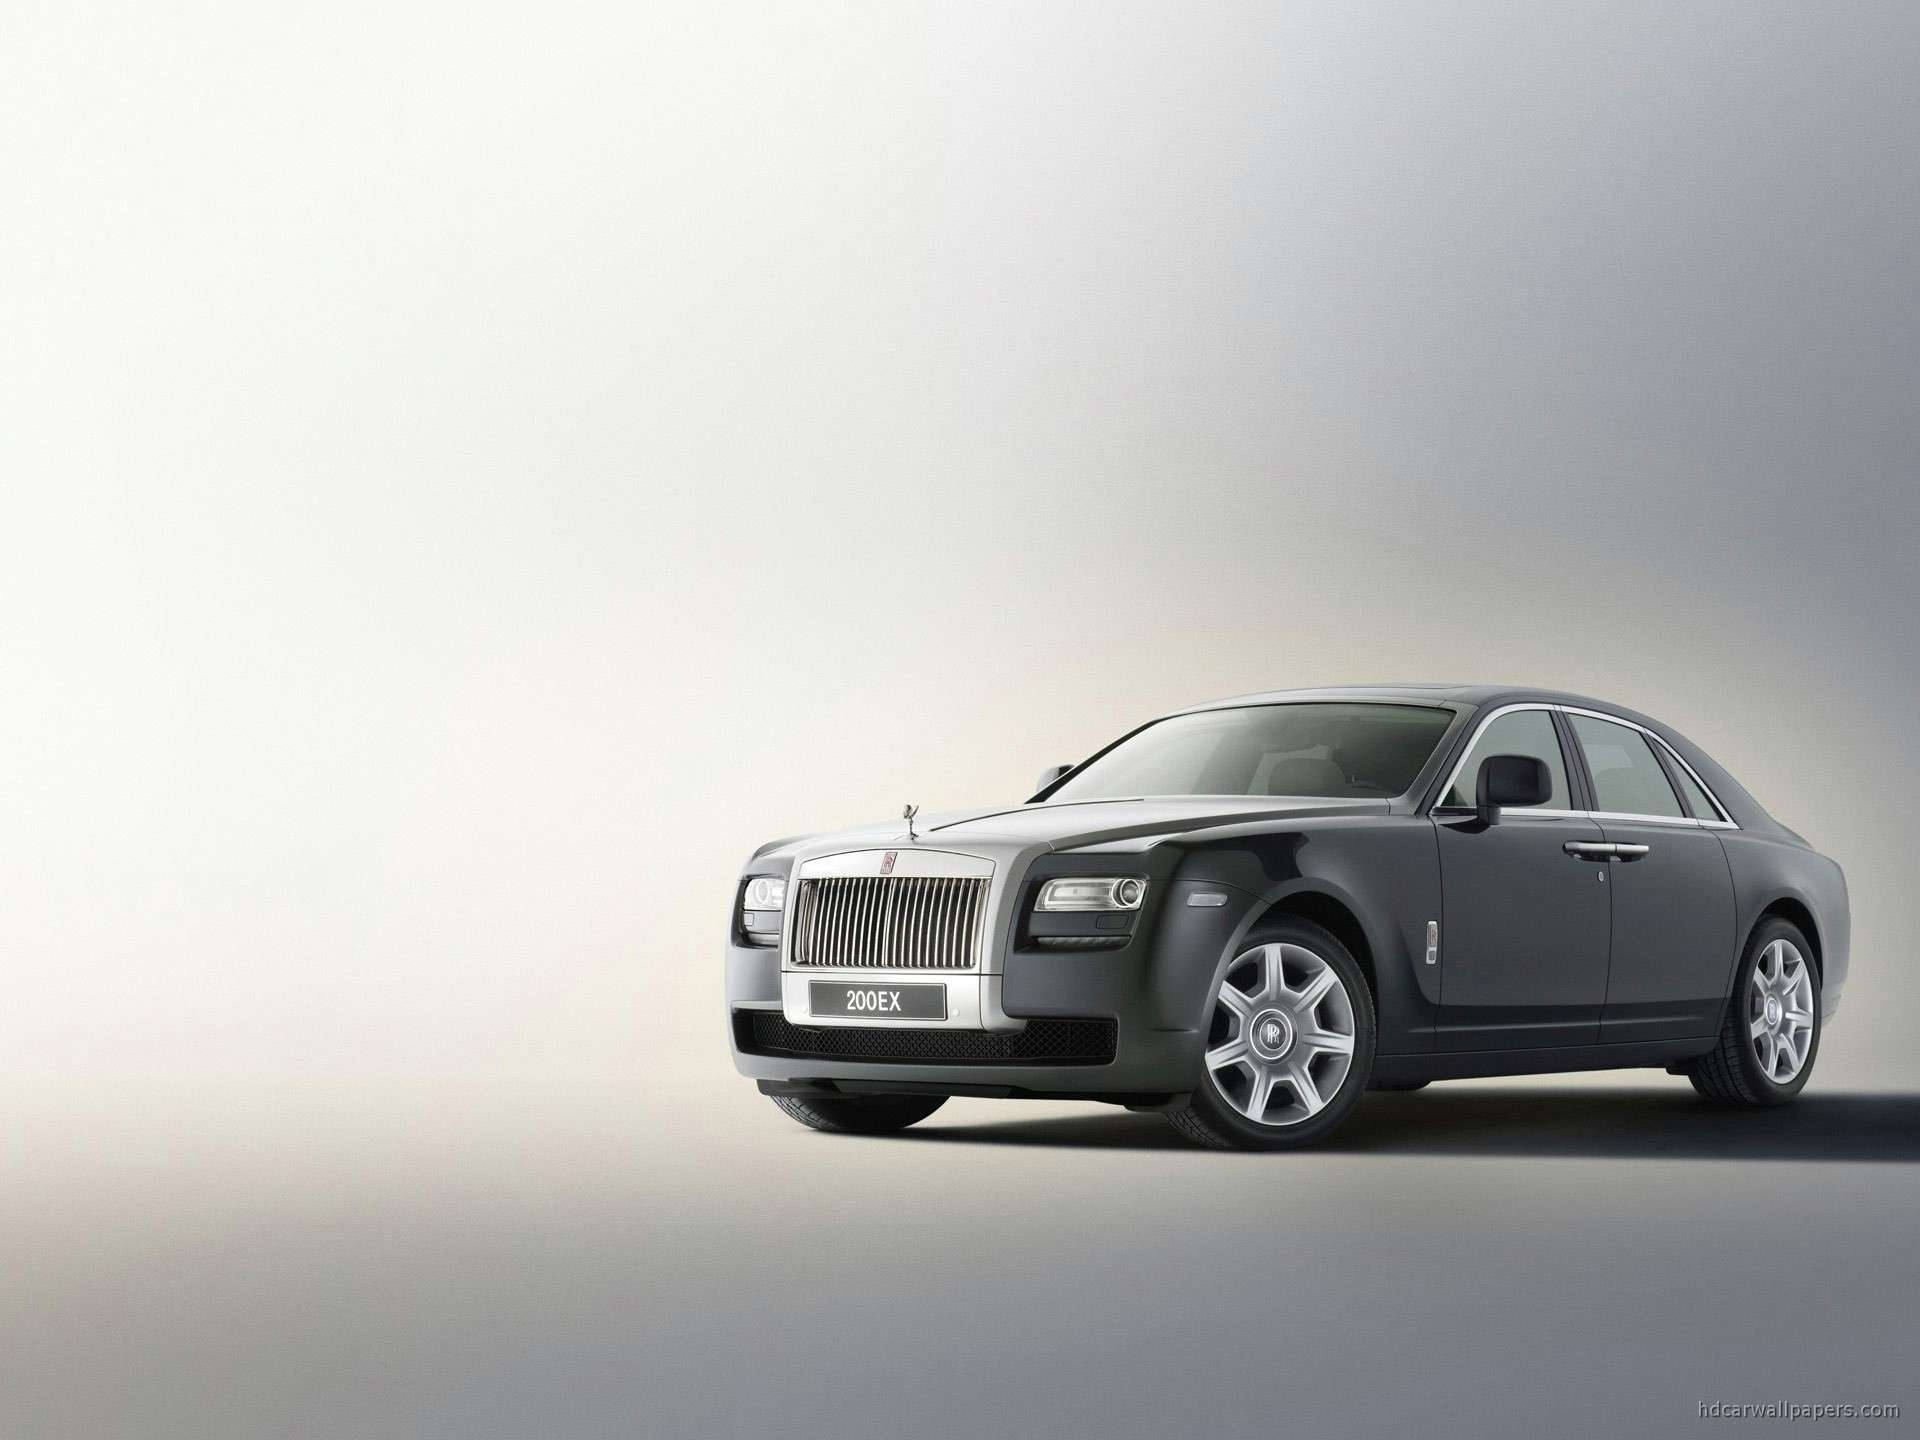 View Of Rolls Royce 200ex Hd Wallpapers : Hd Car Wallpapers